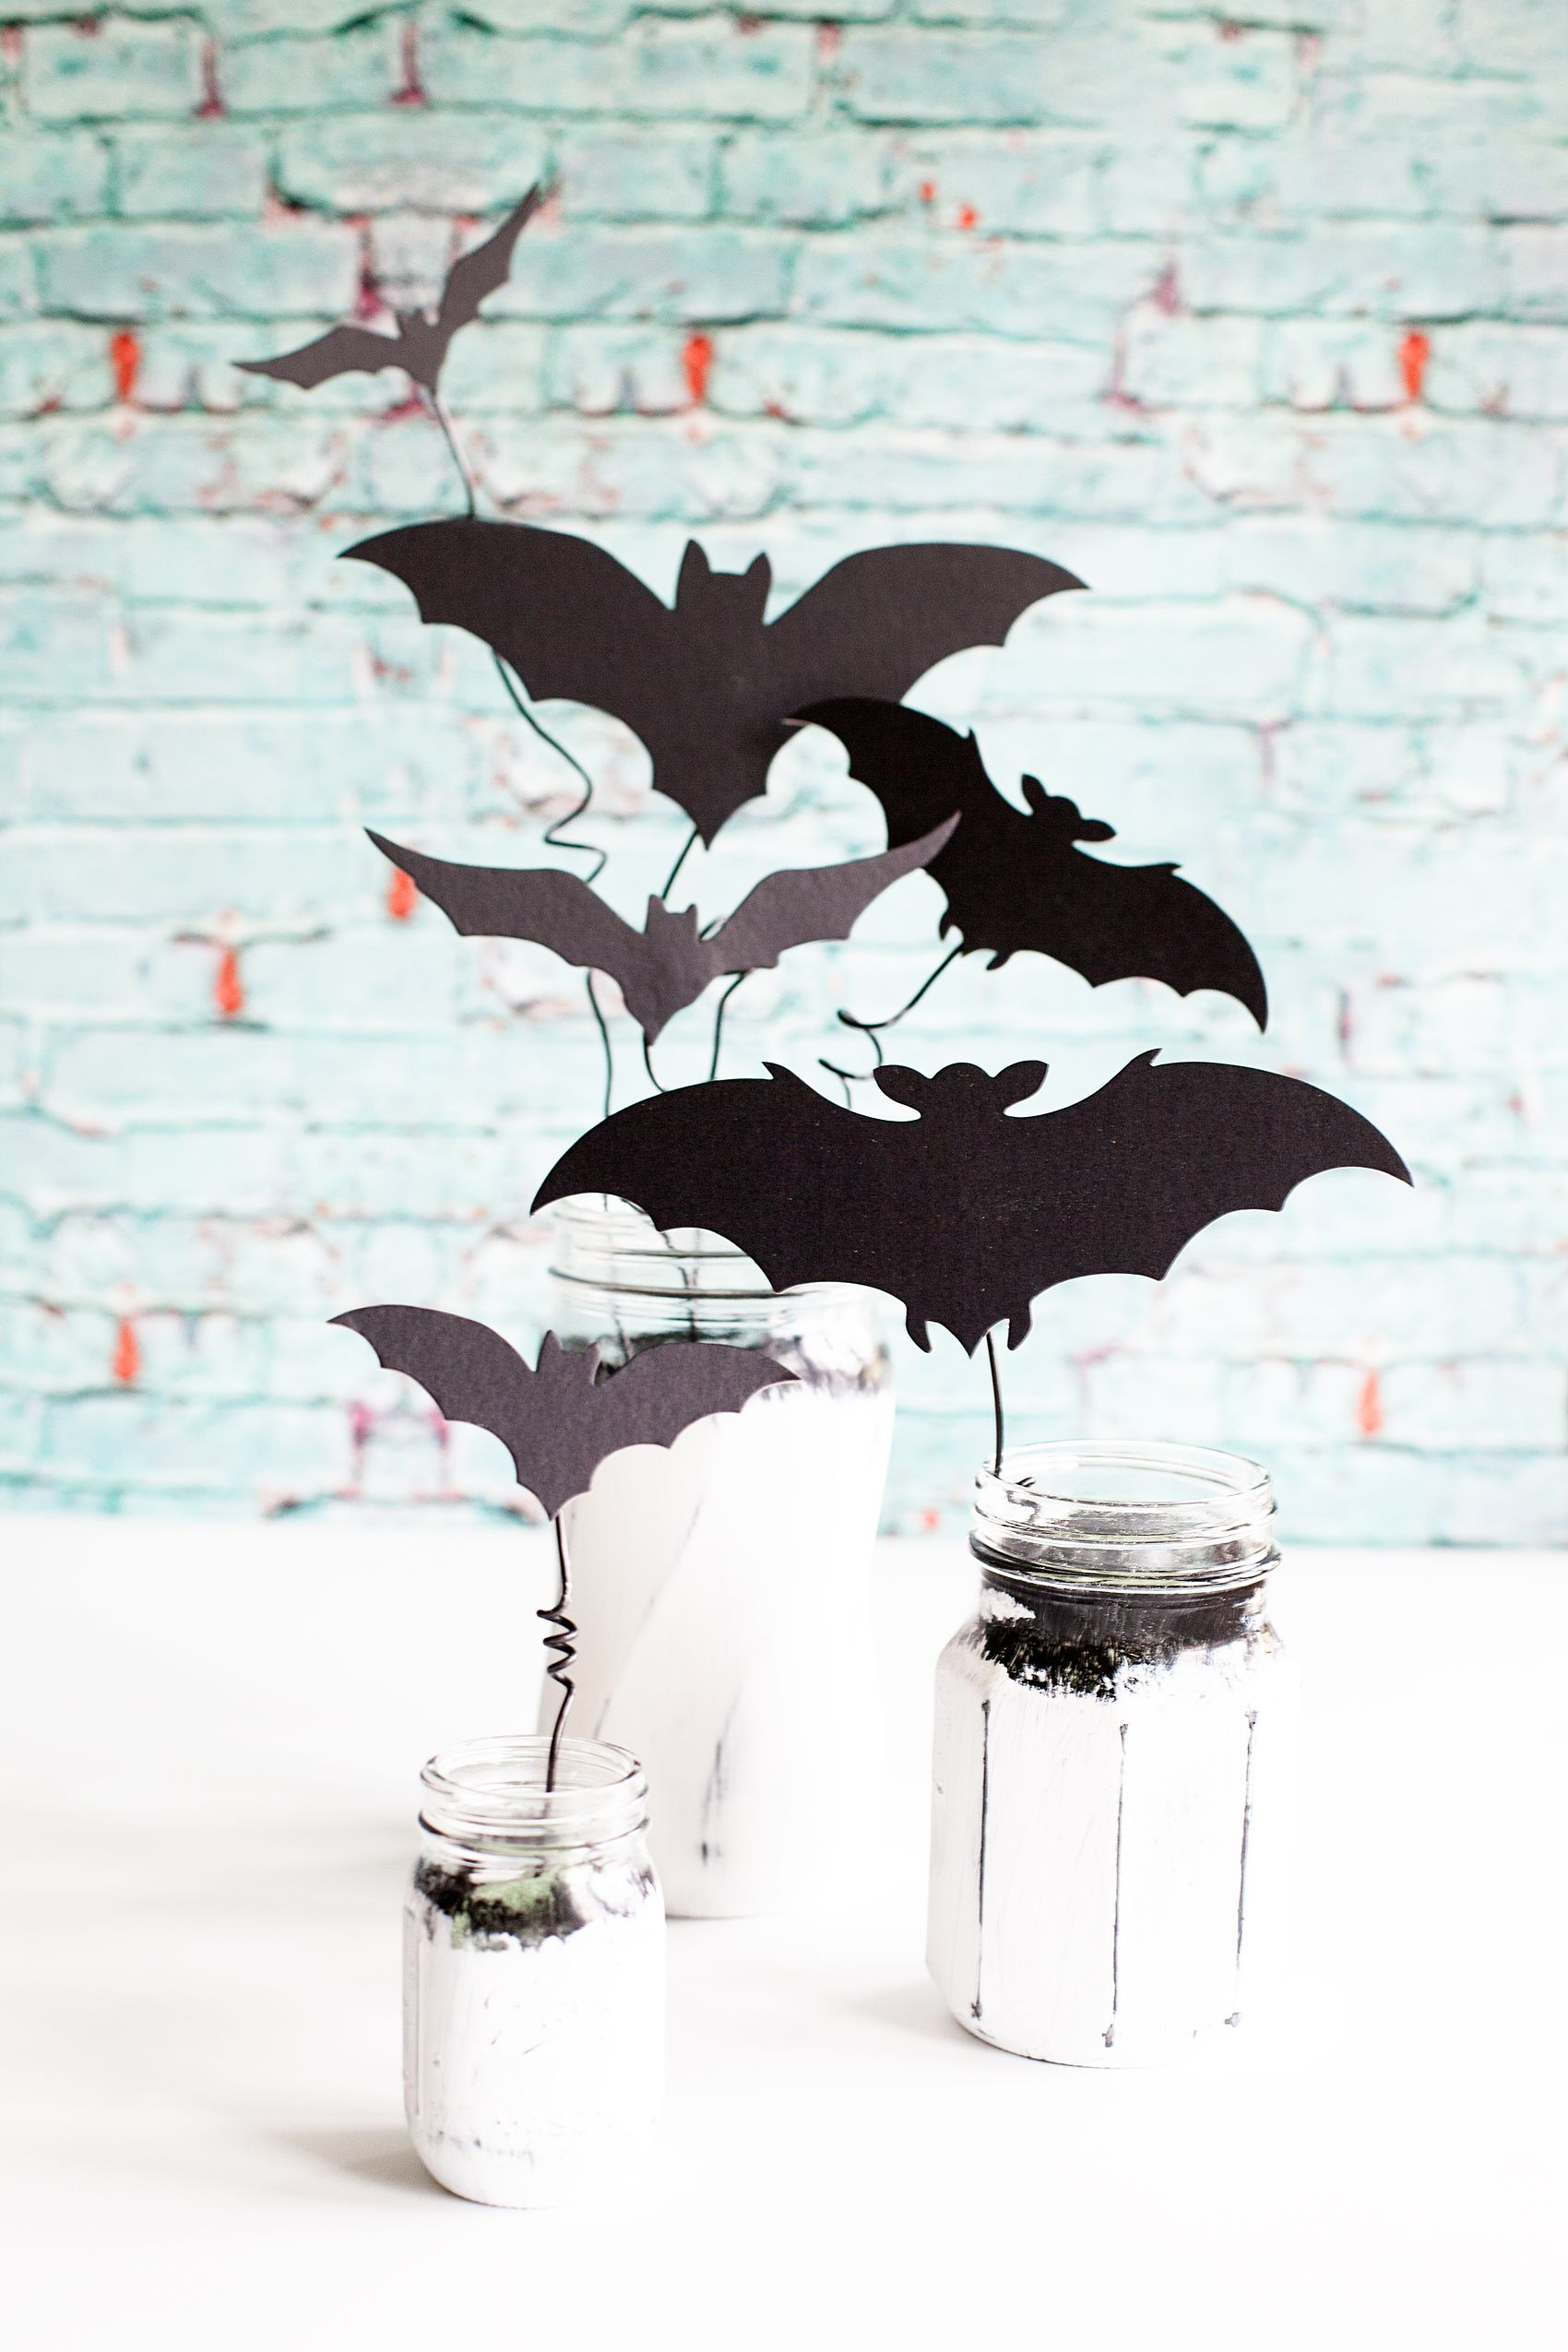 Chalky Finish Bat Jars Have Fun Creating Y Decor With These Americana Ball Filled Creepy Bats